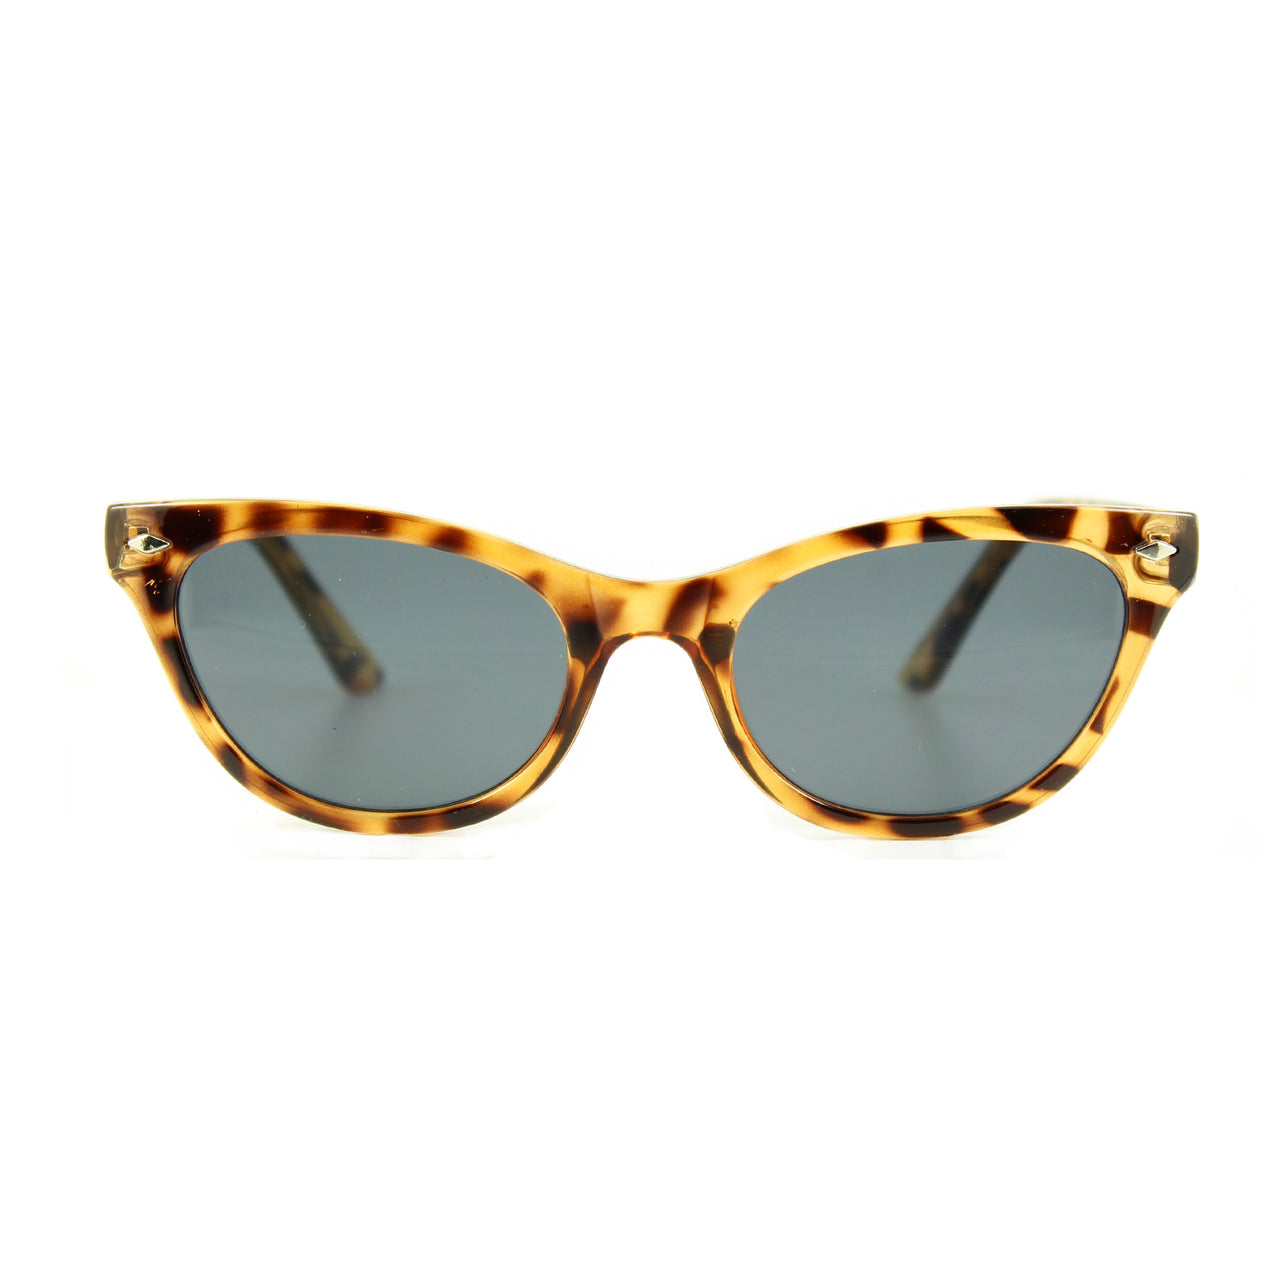 Belle - Sunglasses Crystal Turtle